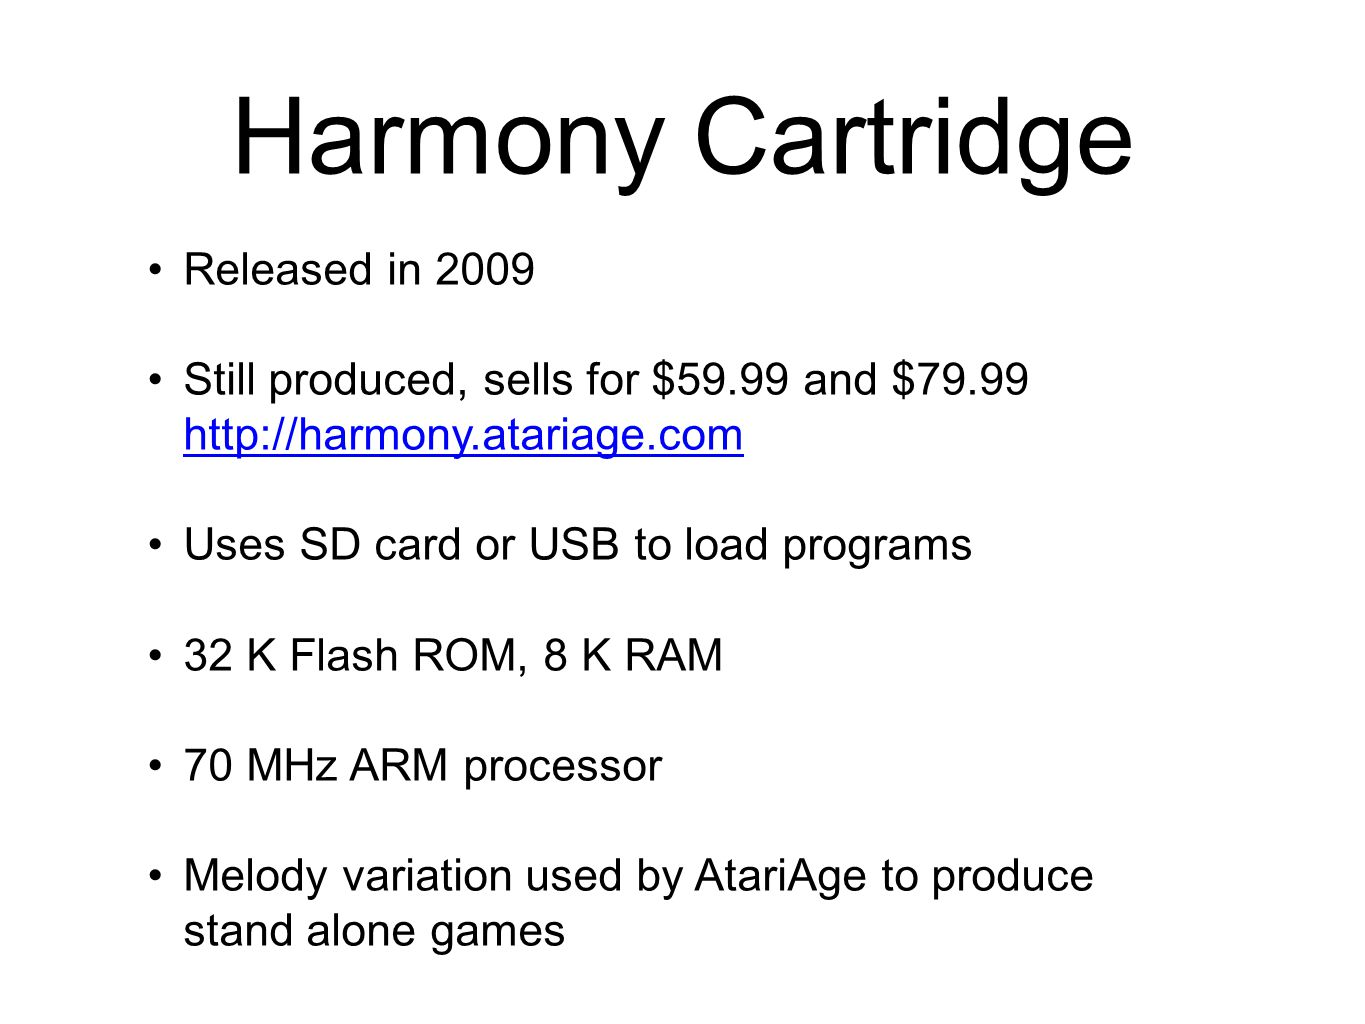 Harmony Cartridge Released in 2009